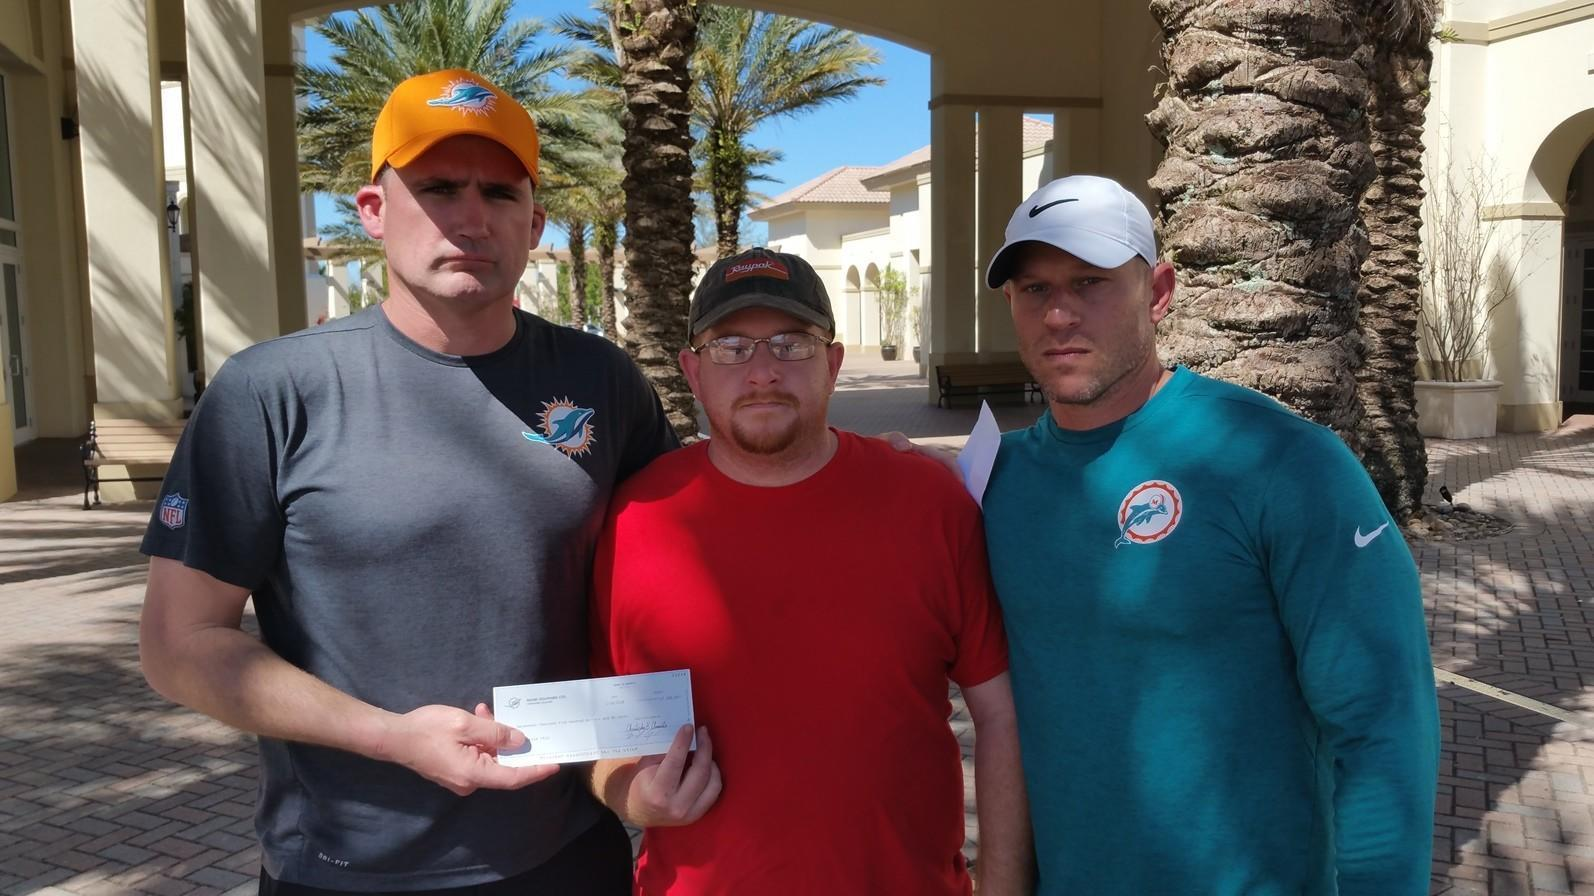 Fl-sp-shooting-victim-coach-feis-dolphins-donation-20180216